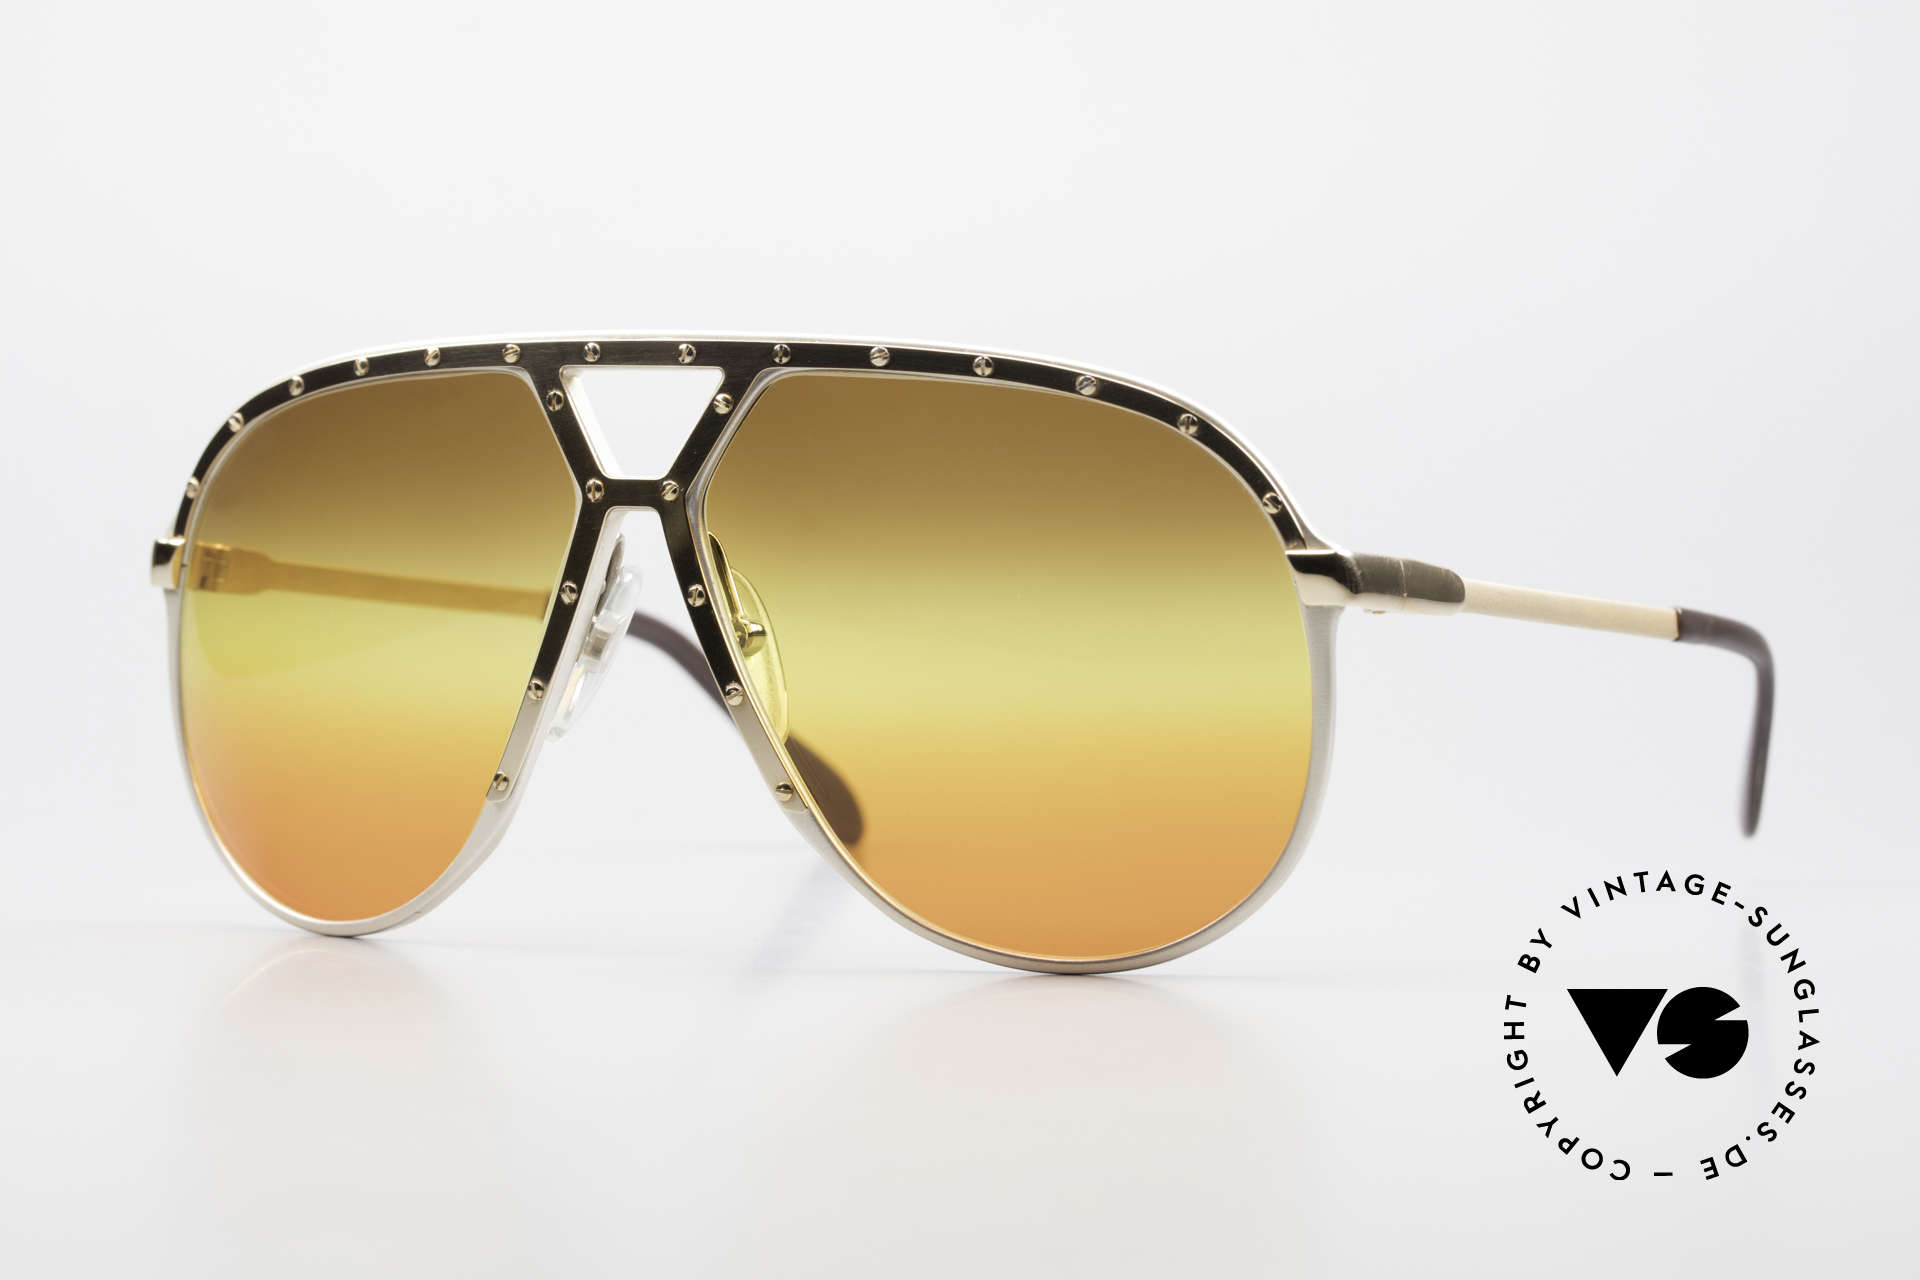 Alpina M1 80's Sunglasses West Germany, old WEST GERMANY sunglasses: the ALPINA M1, Made for Men